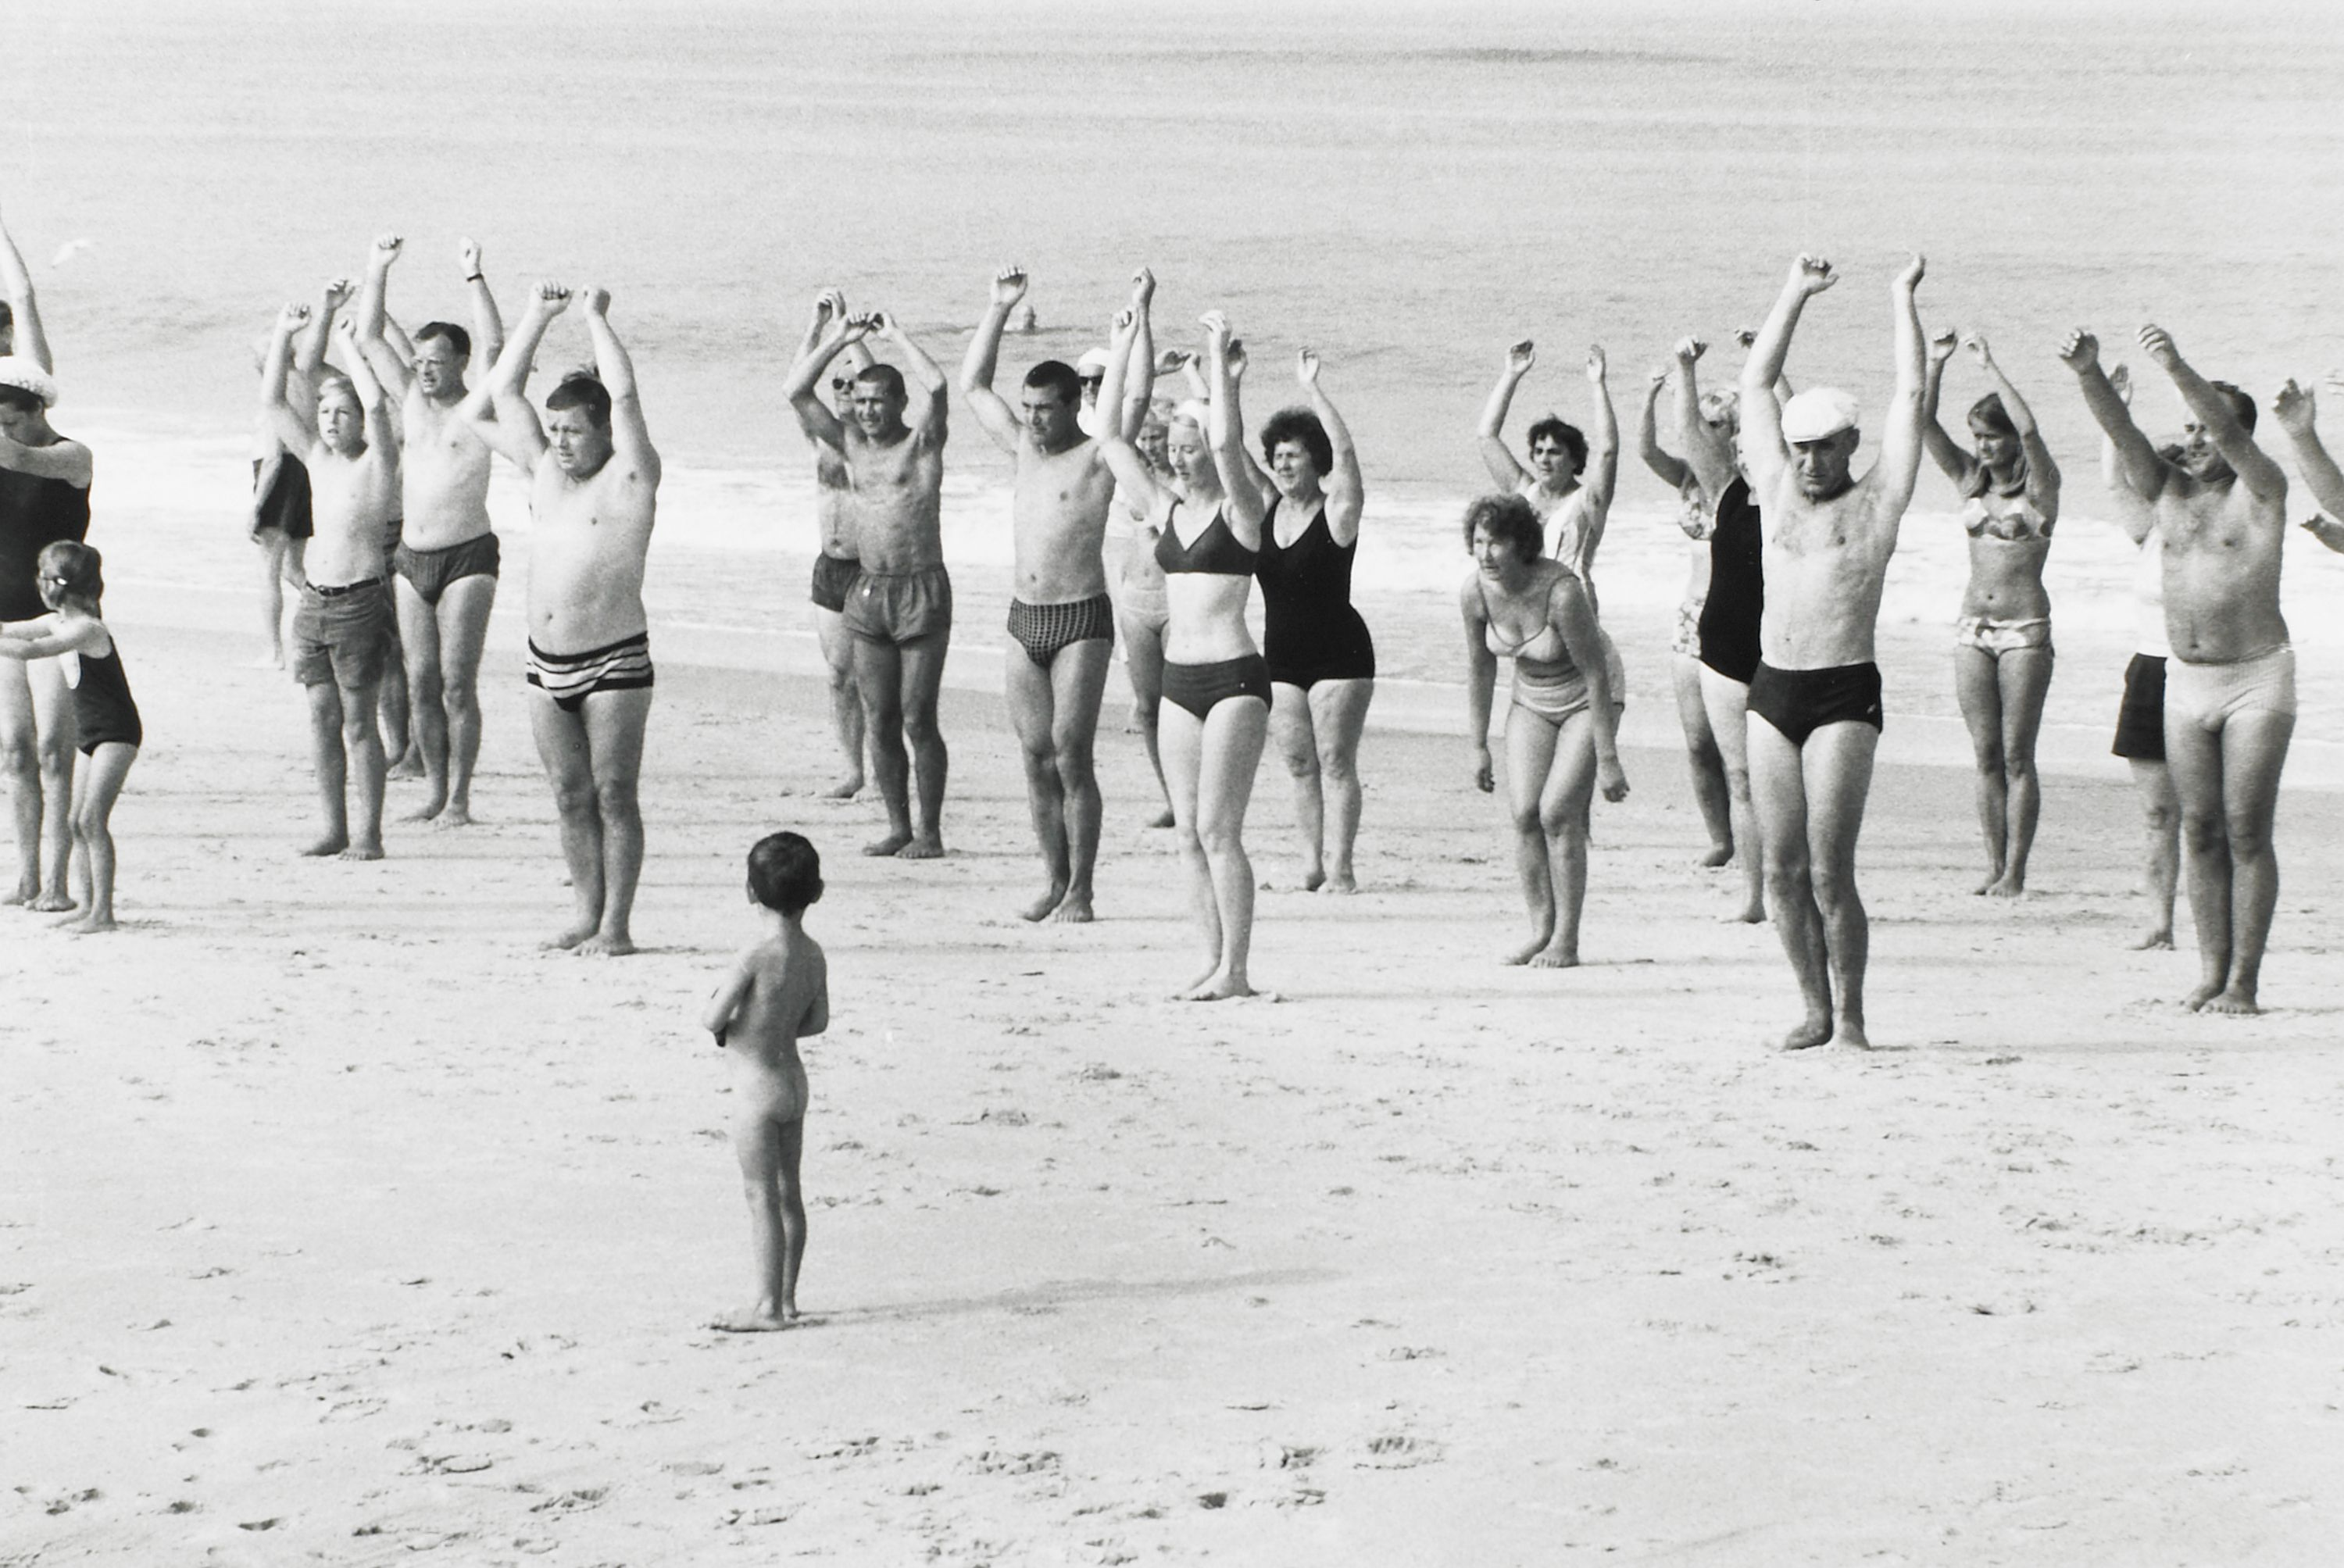 """Beach Group, Sylt, West Germany"" Elliot Erwitt, United States (born 1928). Photograph. BMA Collection, 1979.359.9."